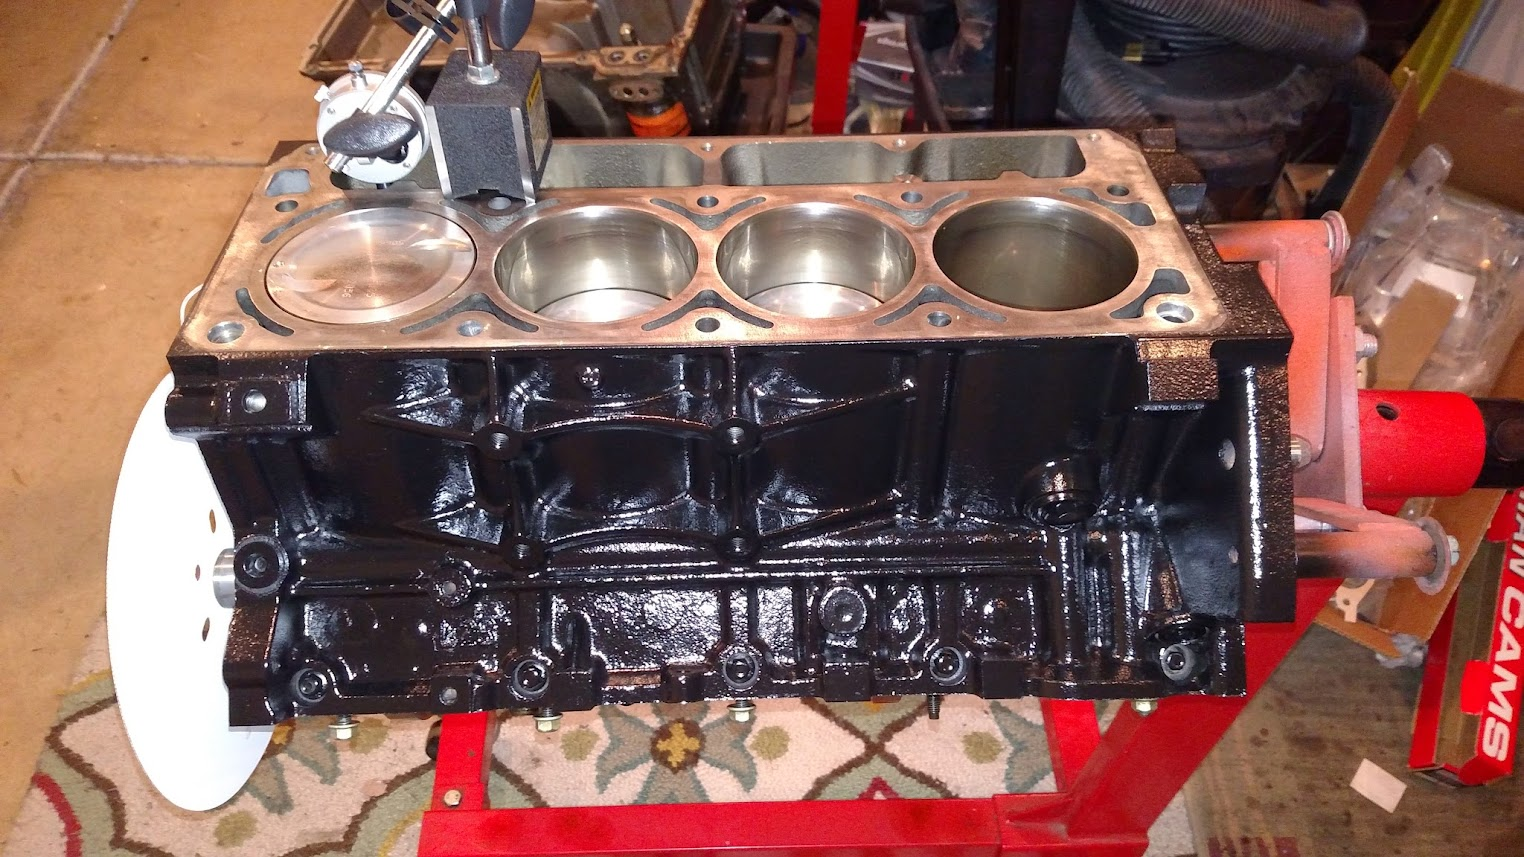 Sbe Ly6 S475 T4 125 83mm 798 Rwhp 17 Psi Through Unlocked 4l80e Gm Engine Diagram The Existing Motor And Trans If Up For Sale I Have Some Interest In It But Time So Far We Are On Schedule